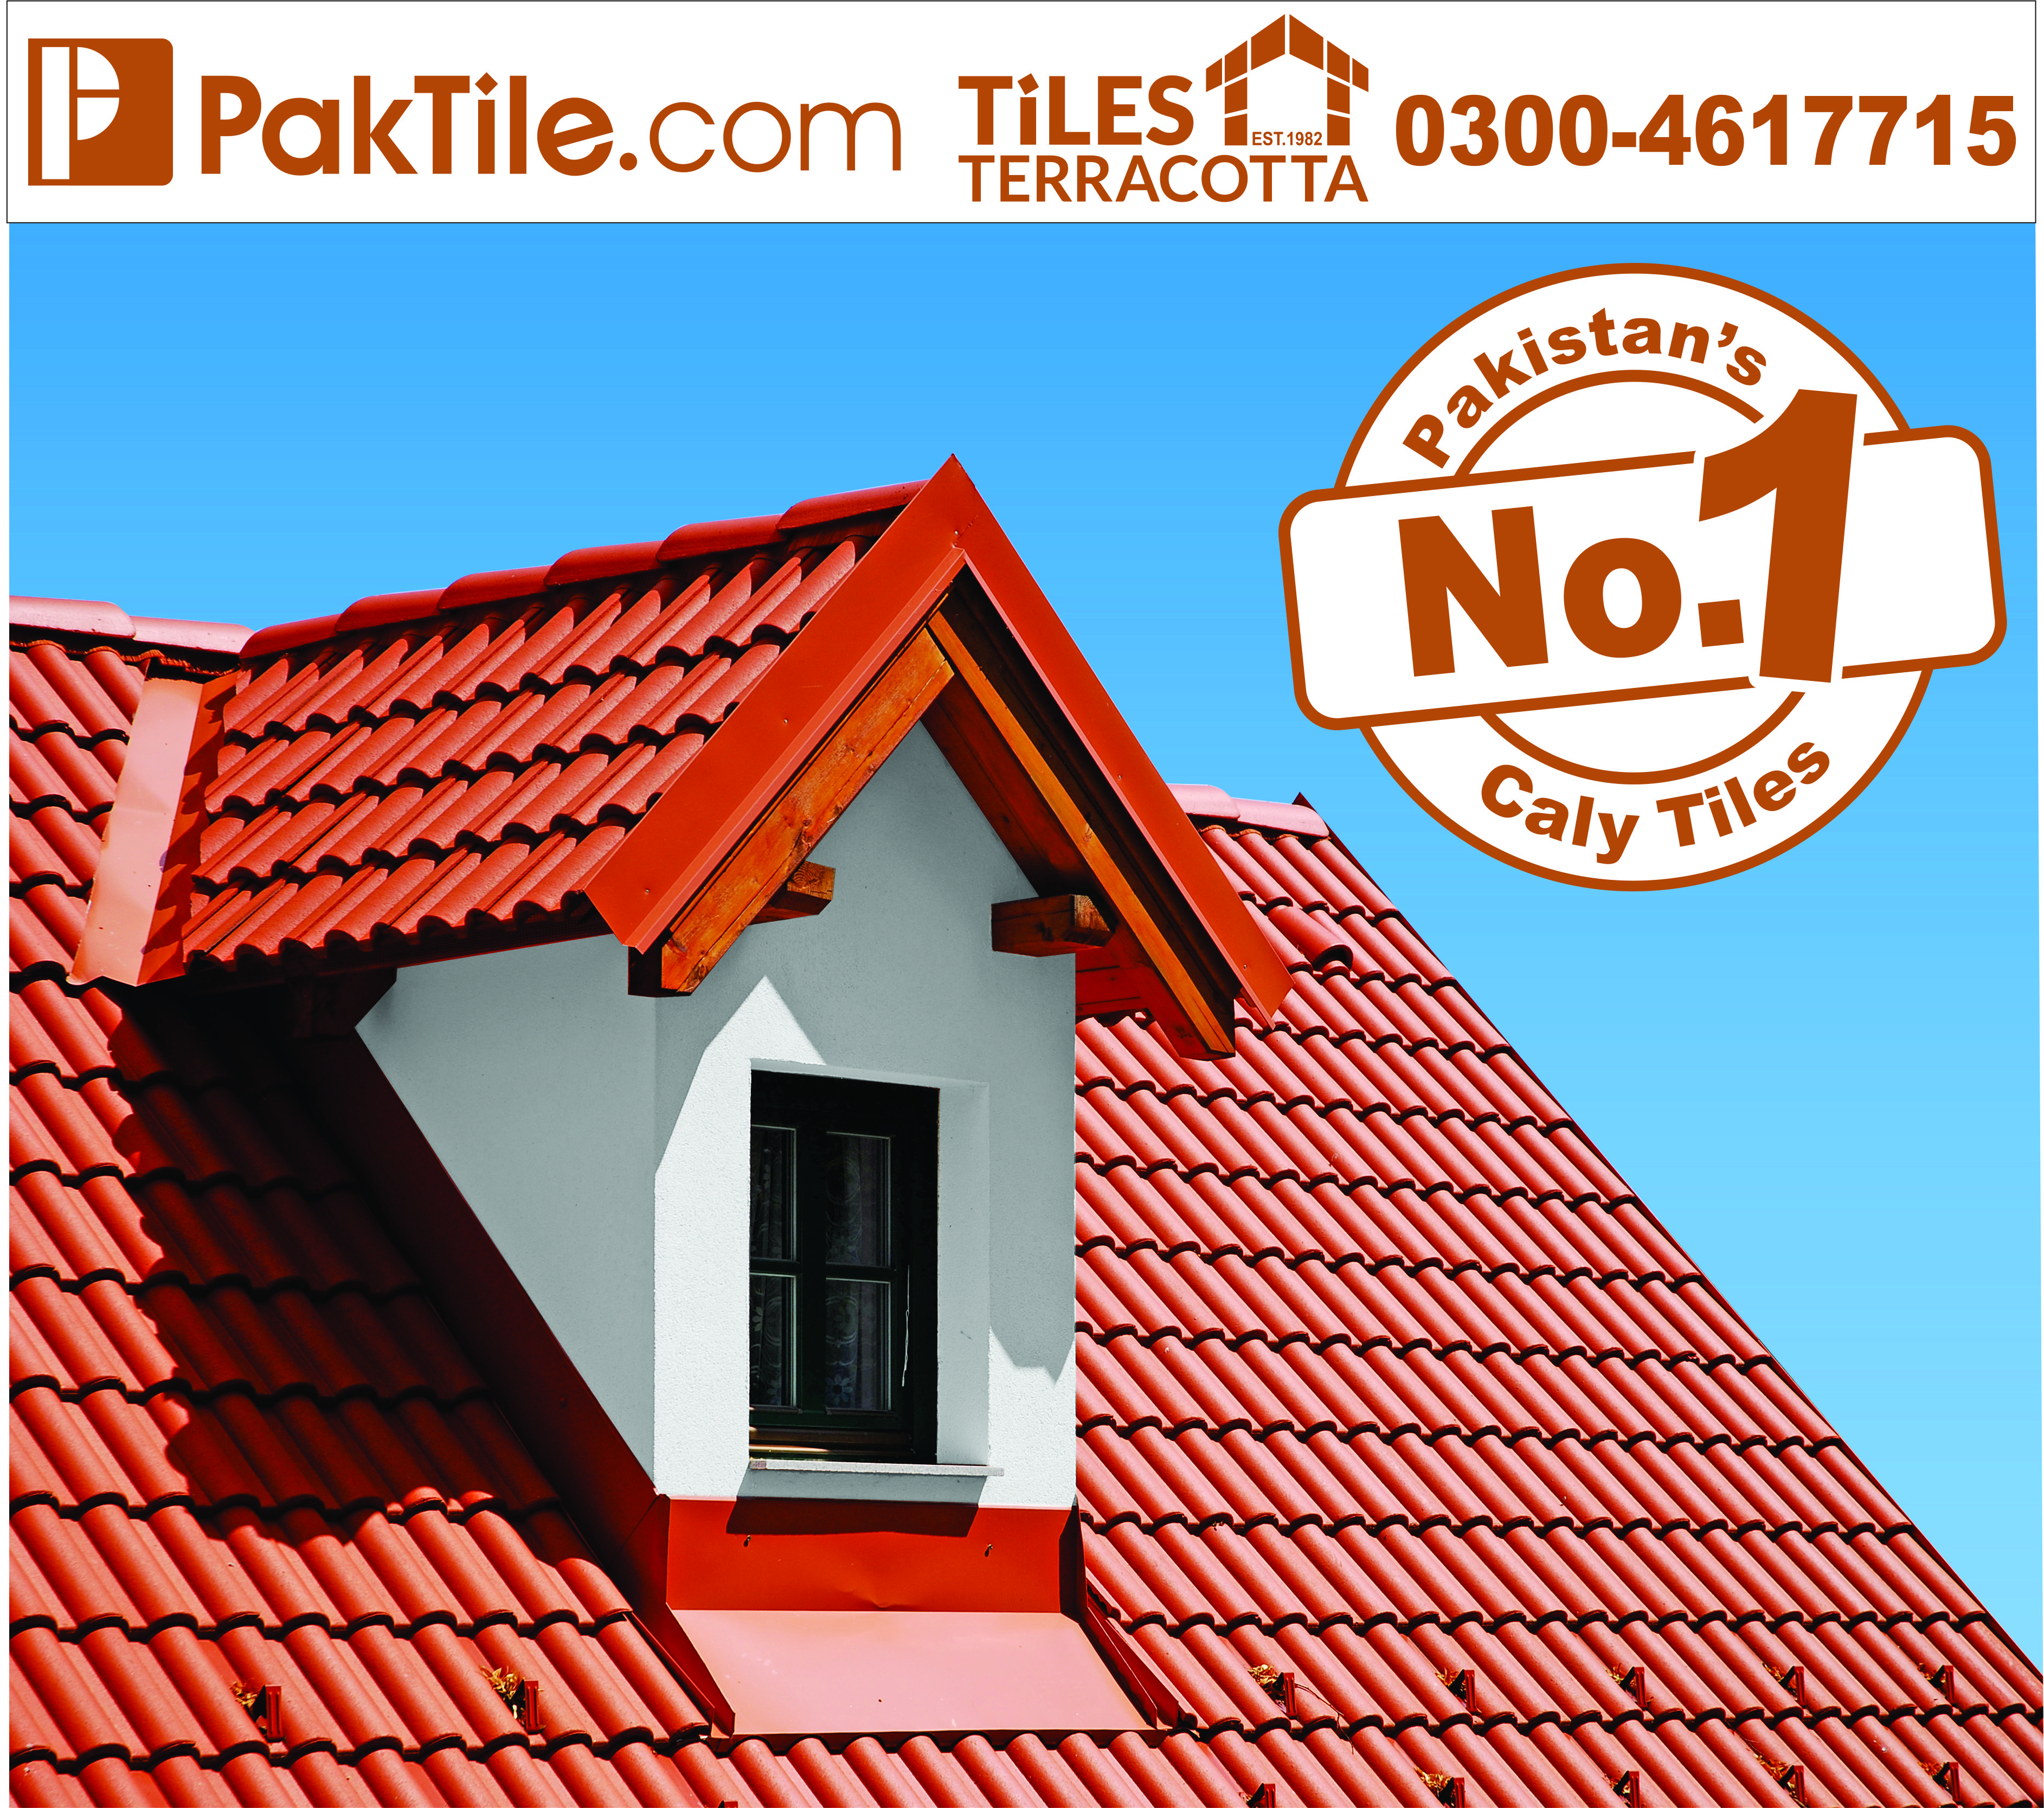 4 Pak clay tiles lahore khaprail tiles price different types of terracotta roof tiles in pakistan images